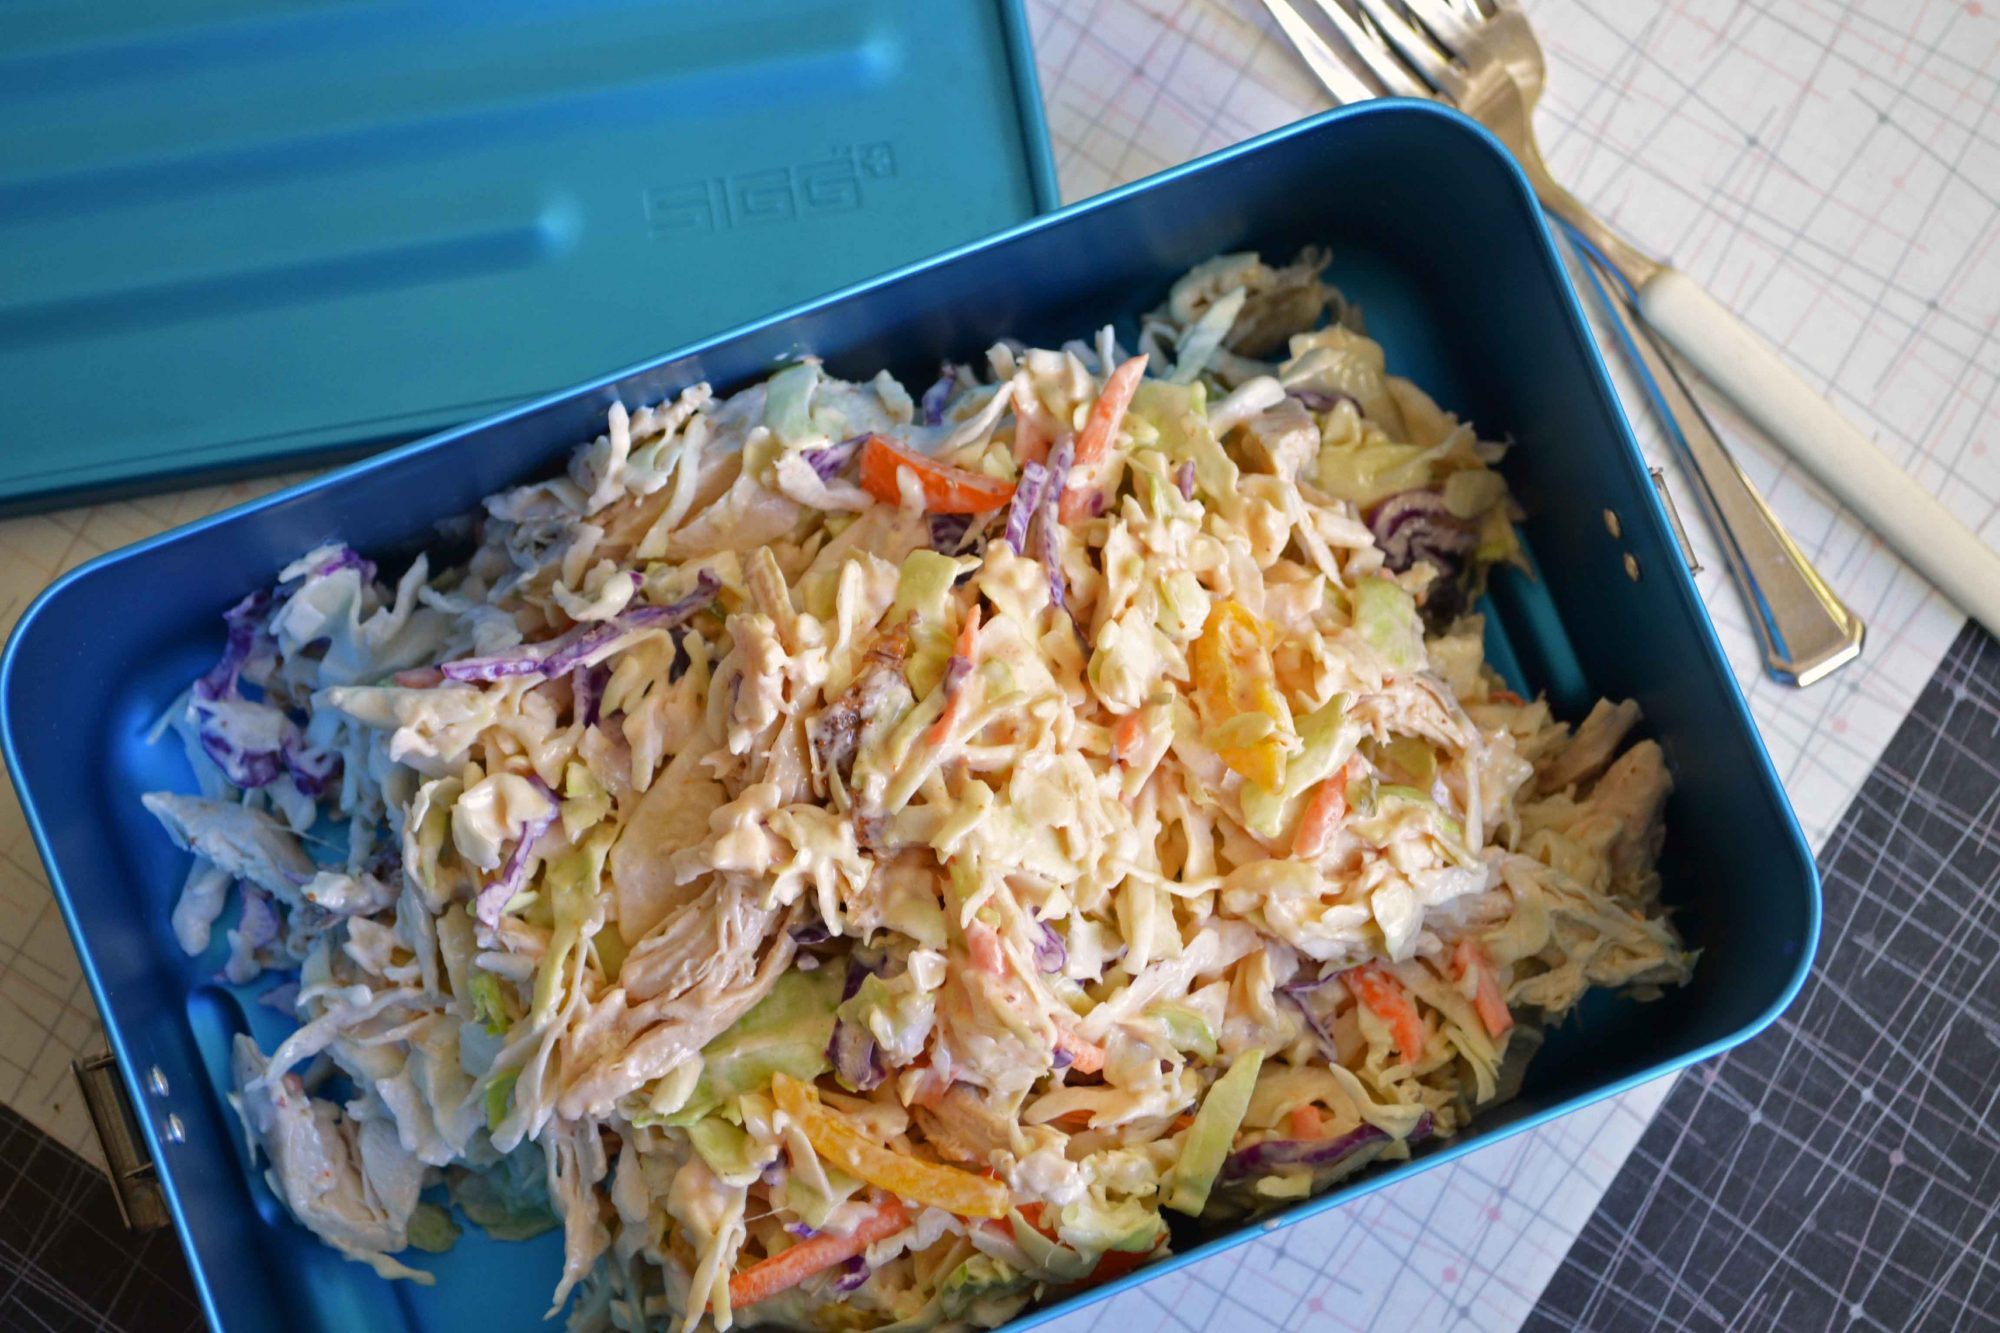 Thousand Island & Chicken slaw